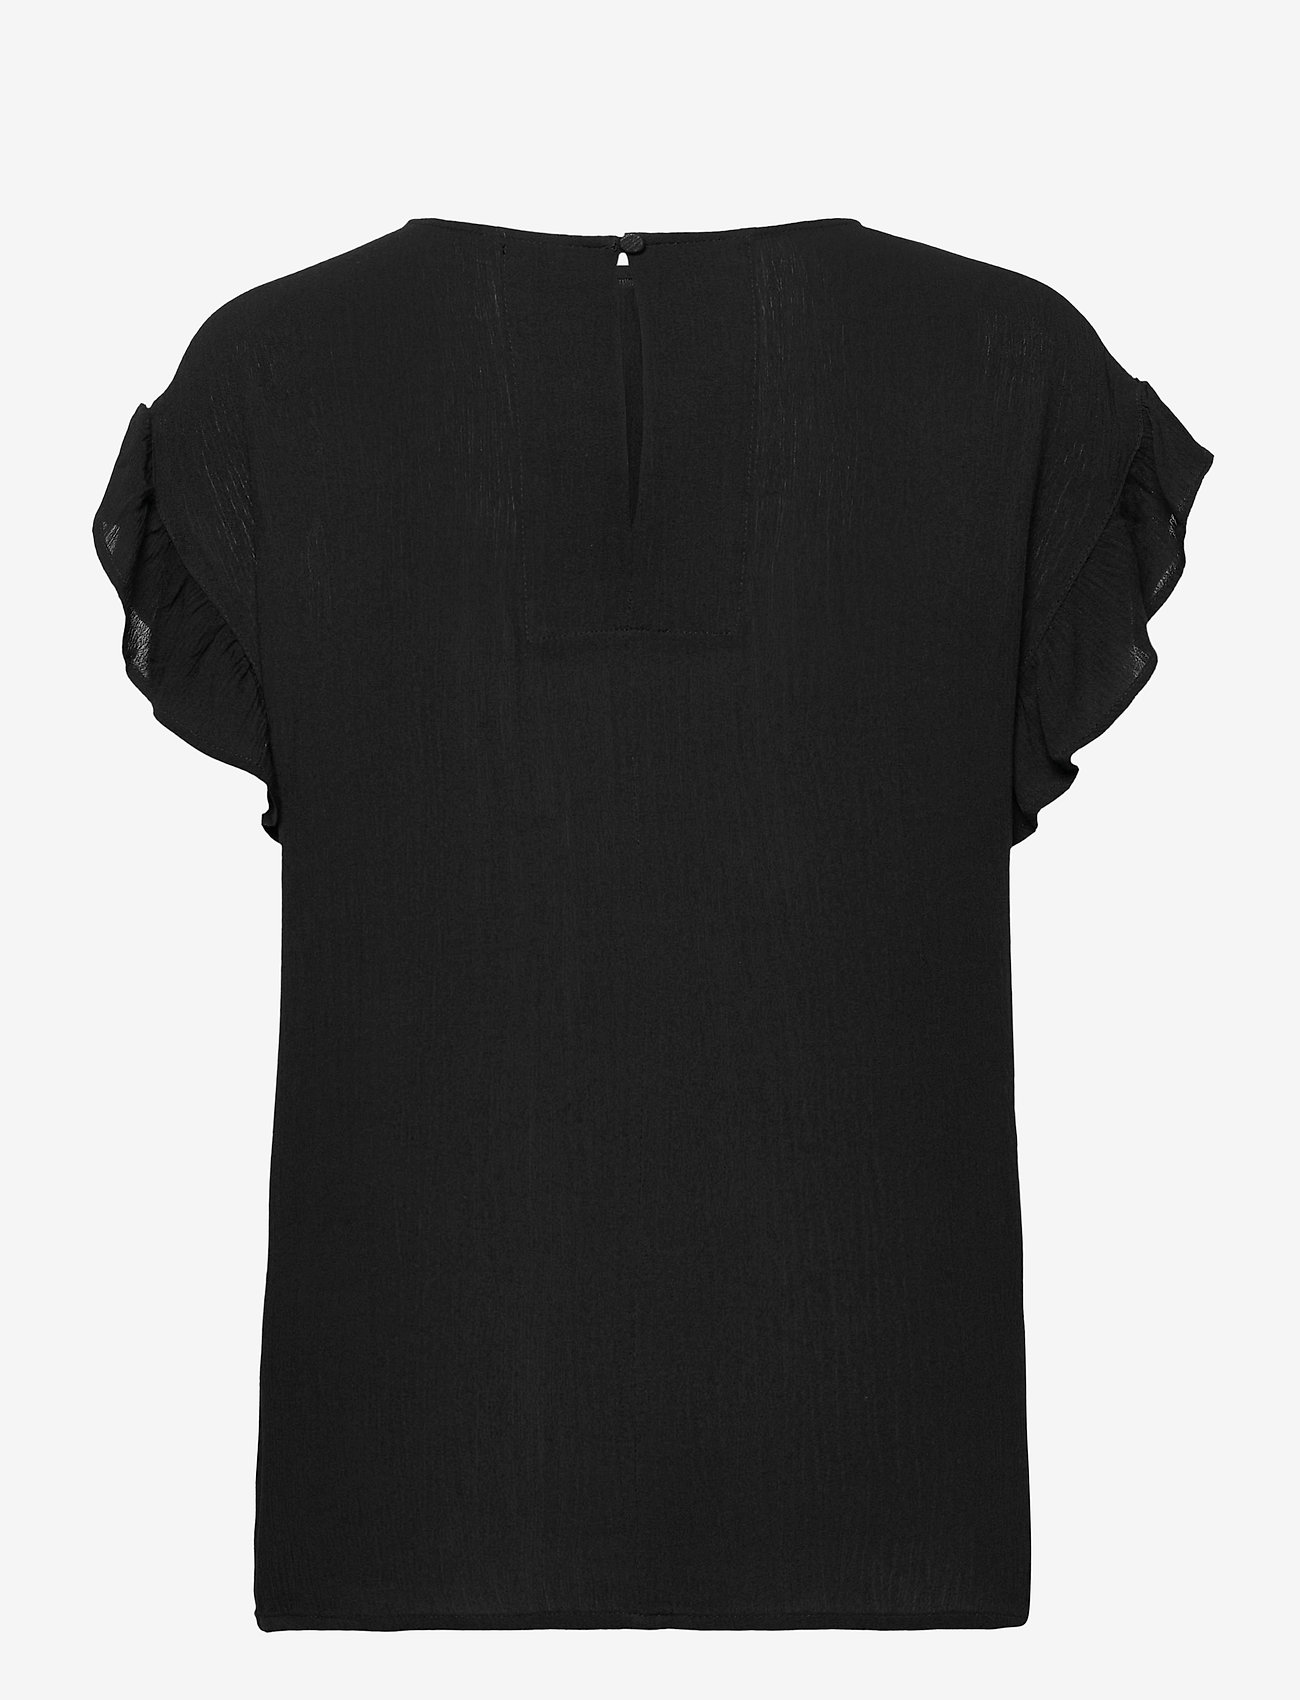 ICHI - IHMARRAKECH SO SS4 - short-sleeved blouses - black - 1